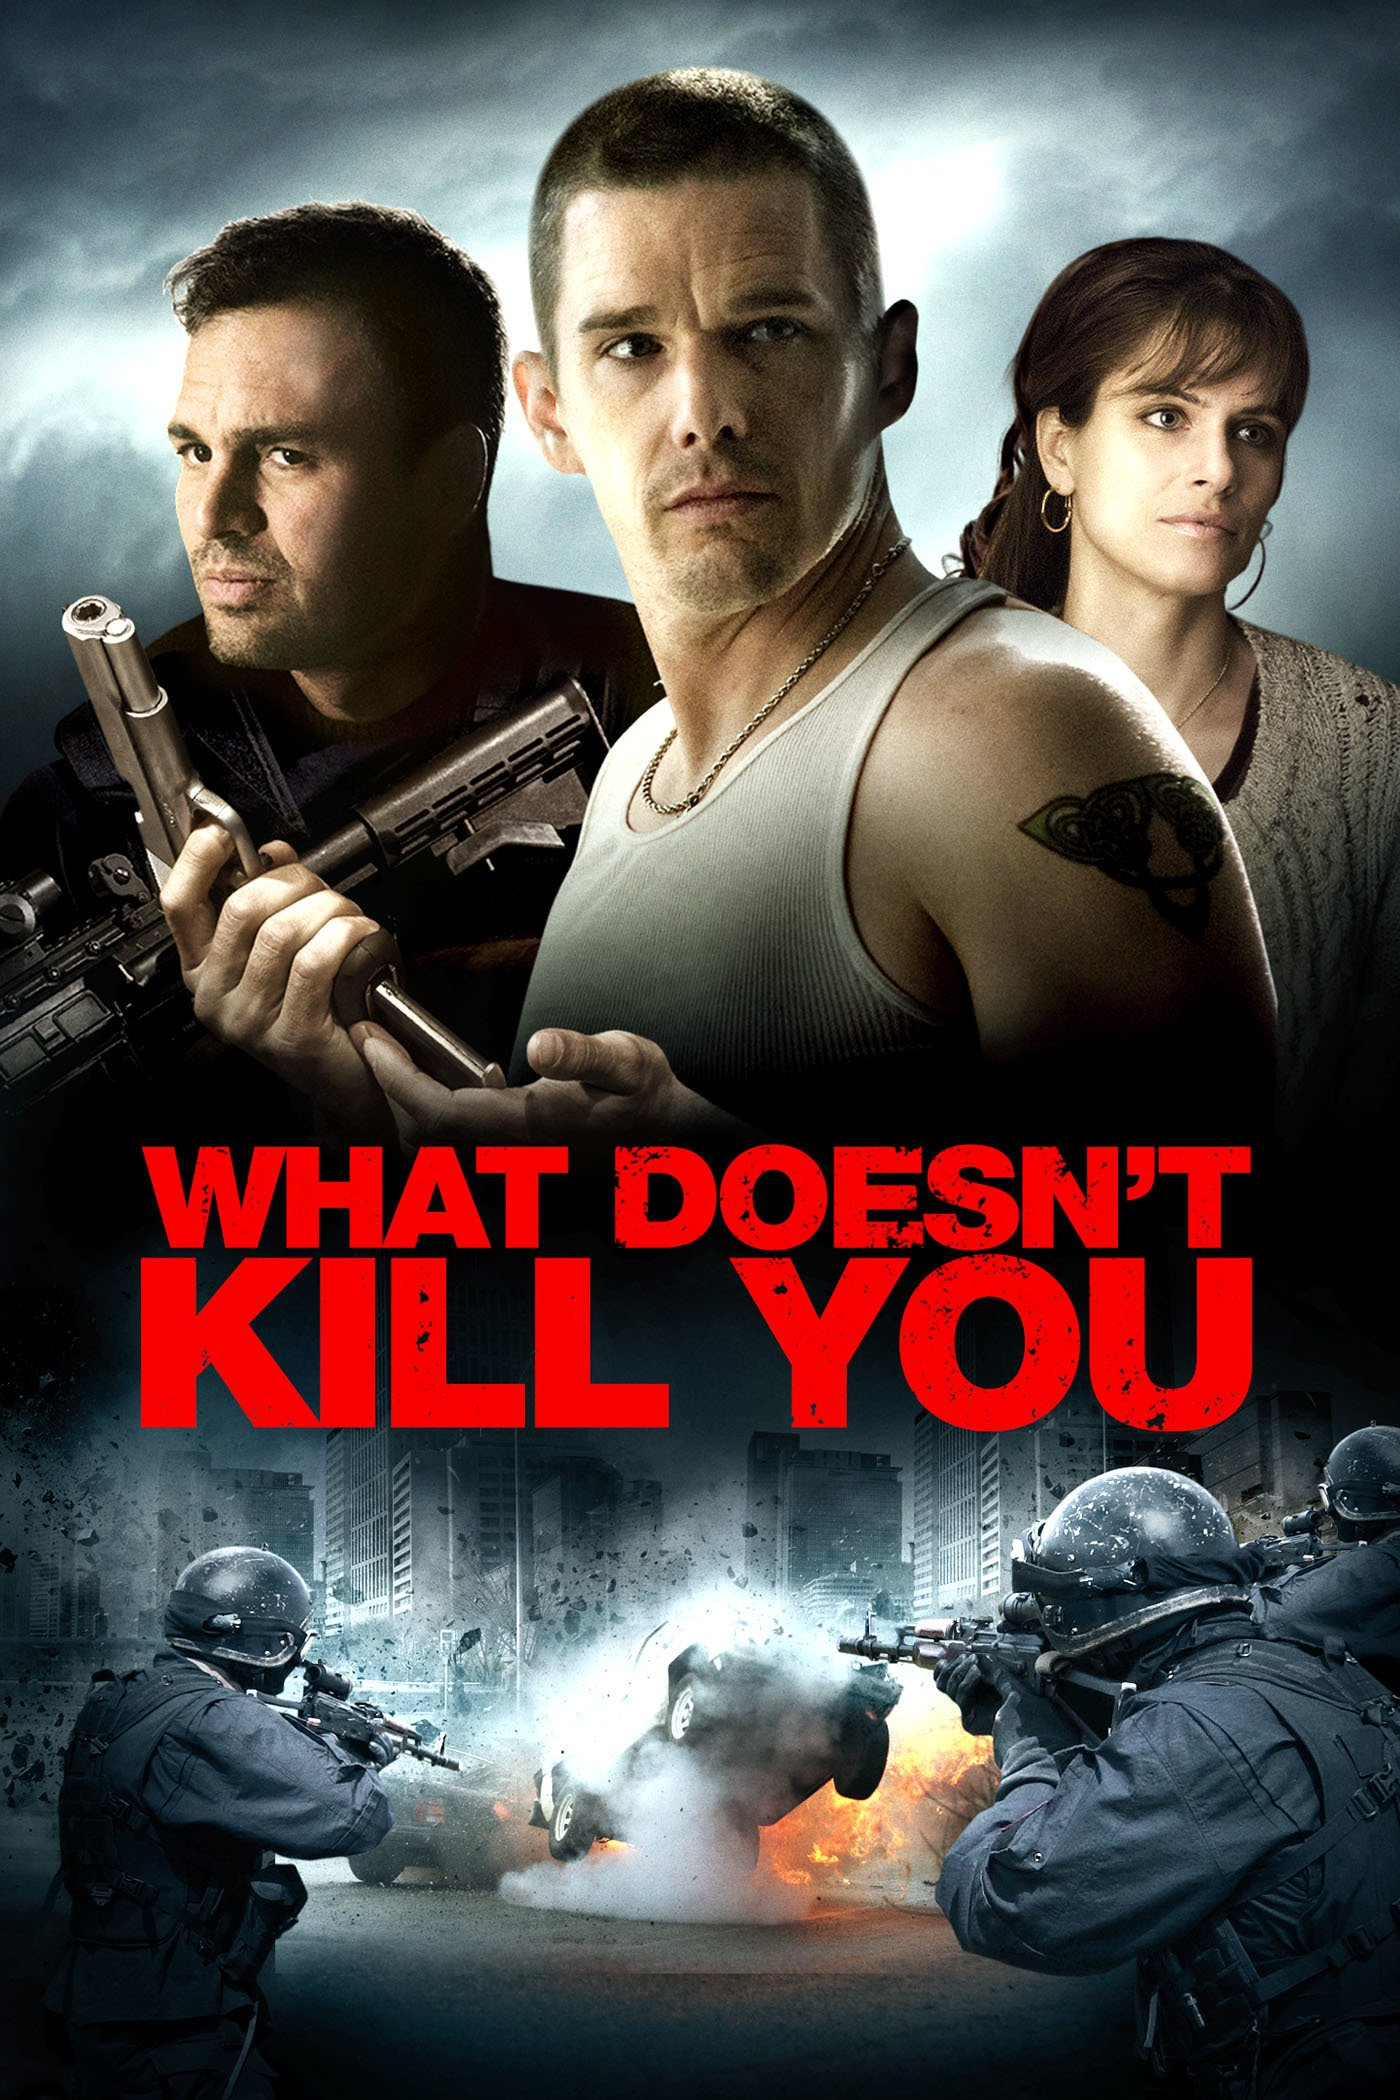 What Doesn't Kill You, 2008